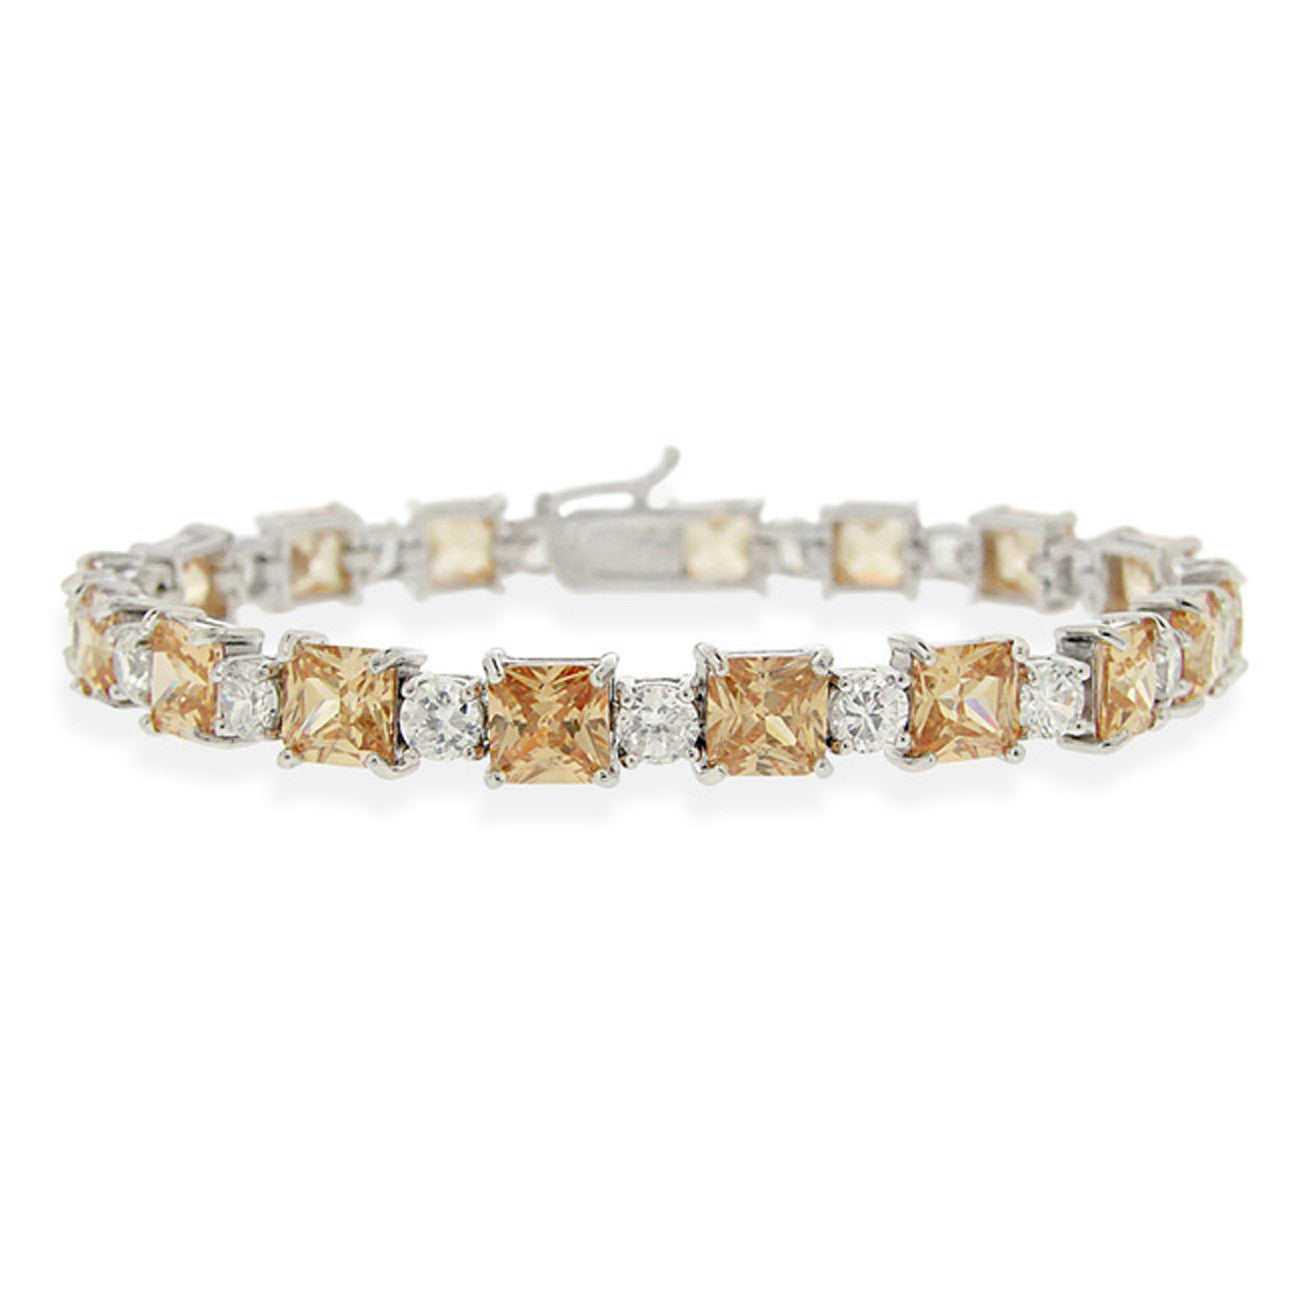 Champagne Cubic Zirconia Accented Bracelet in Sterling Silver